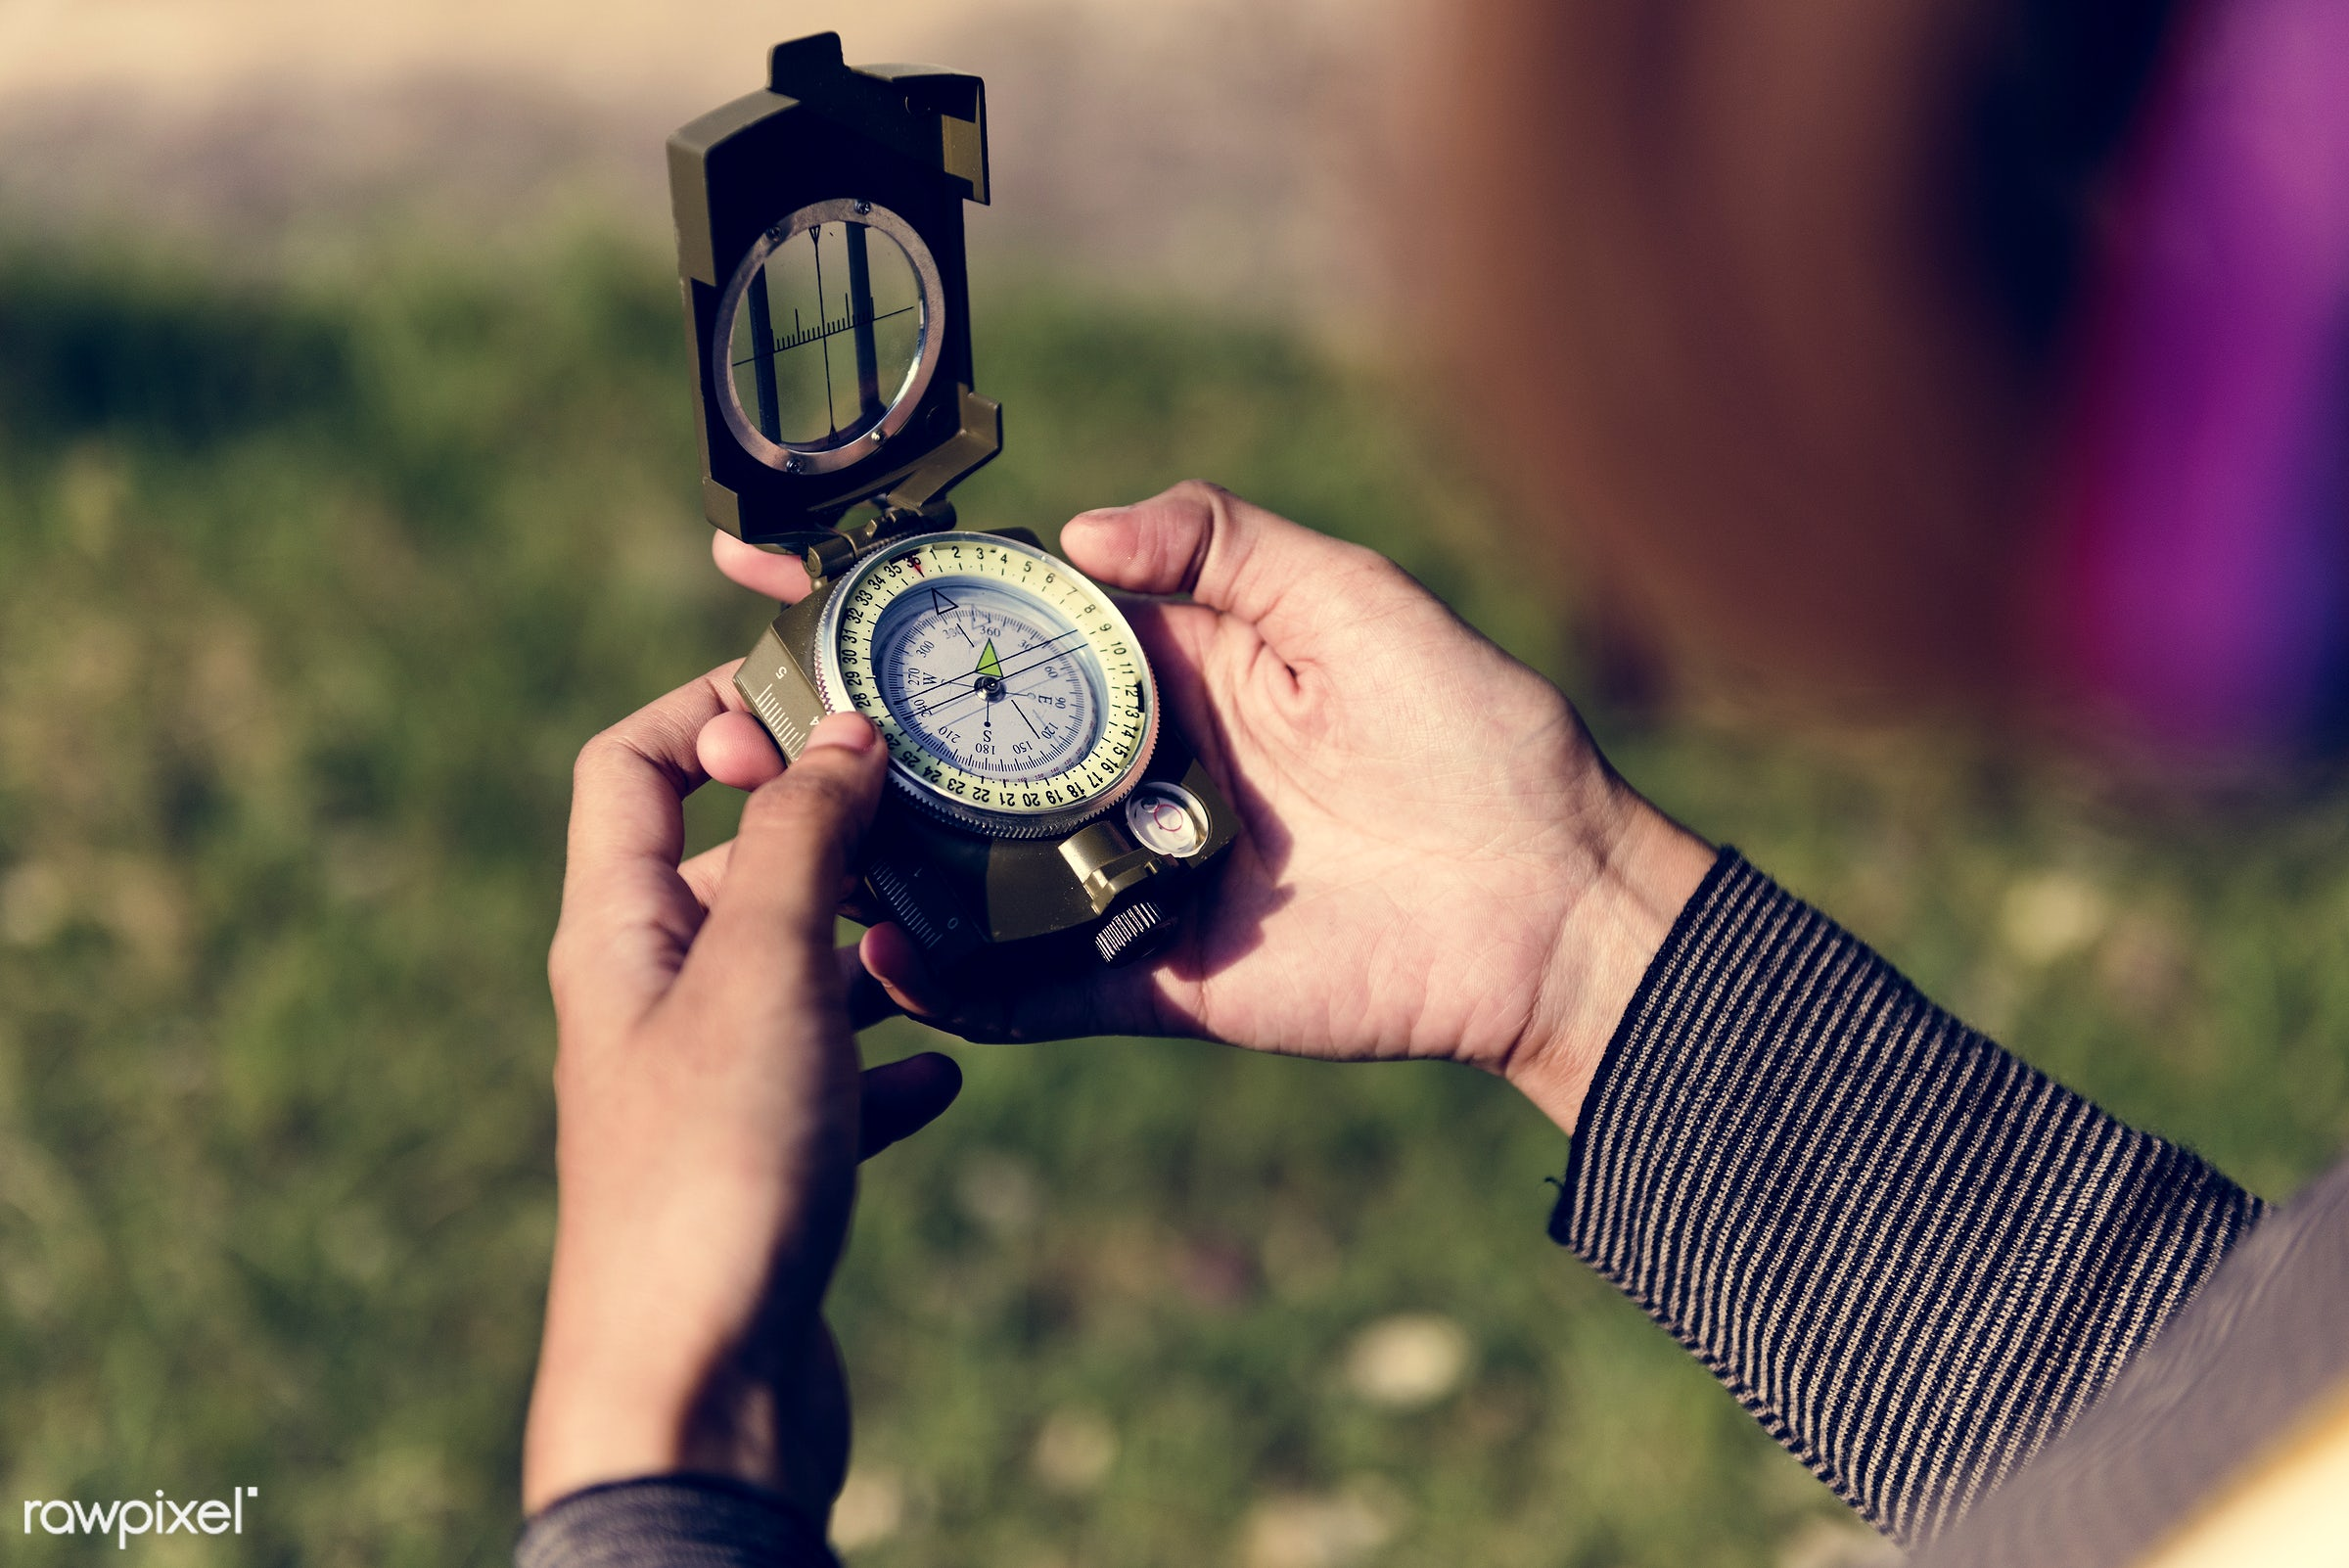 hand, holding, compass, direction, navigation, equipment, tool, aerial, grass, leaves, outdoors